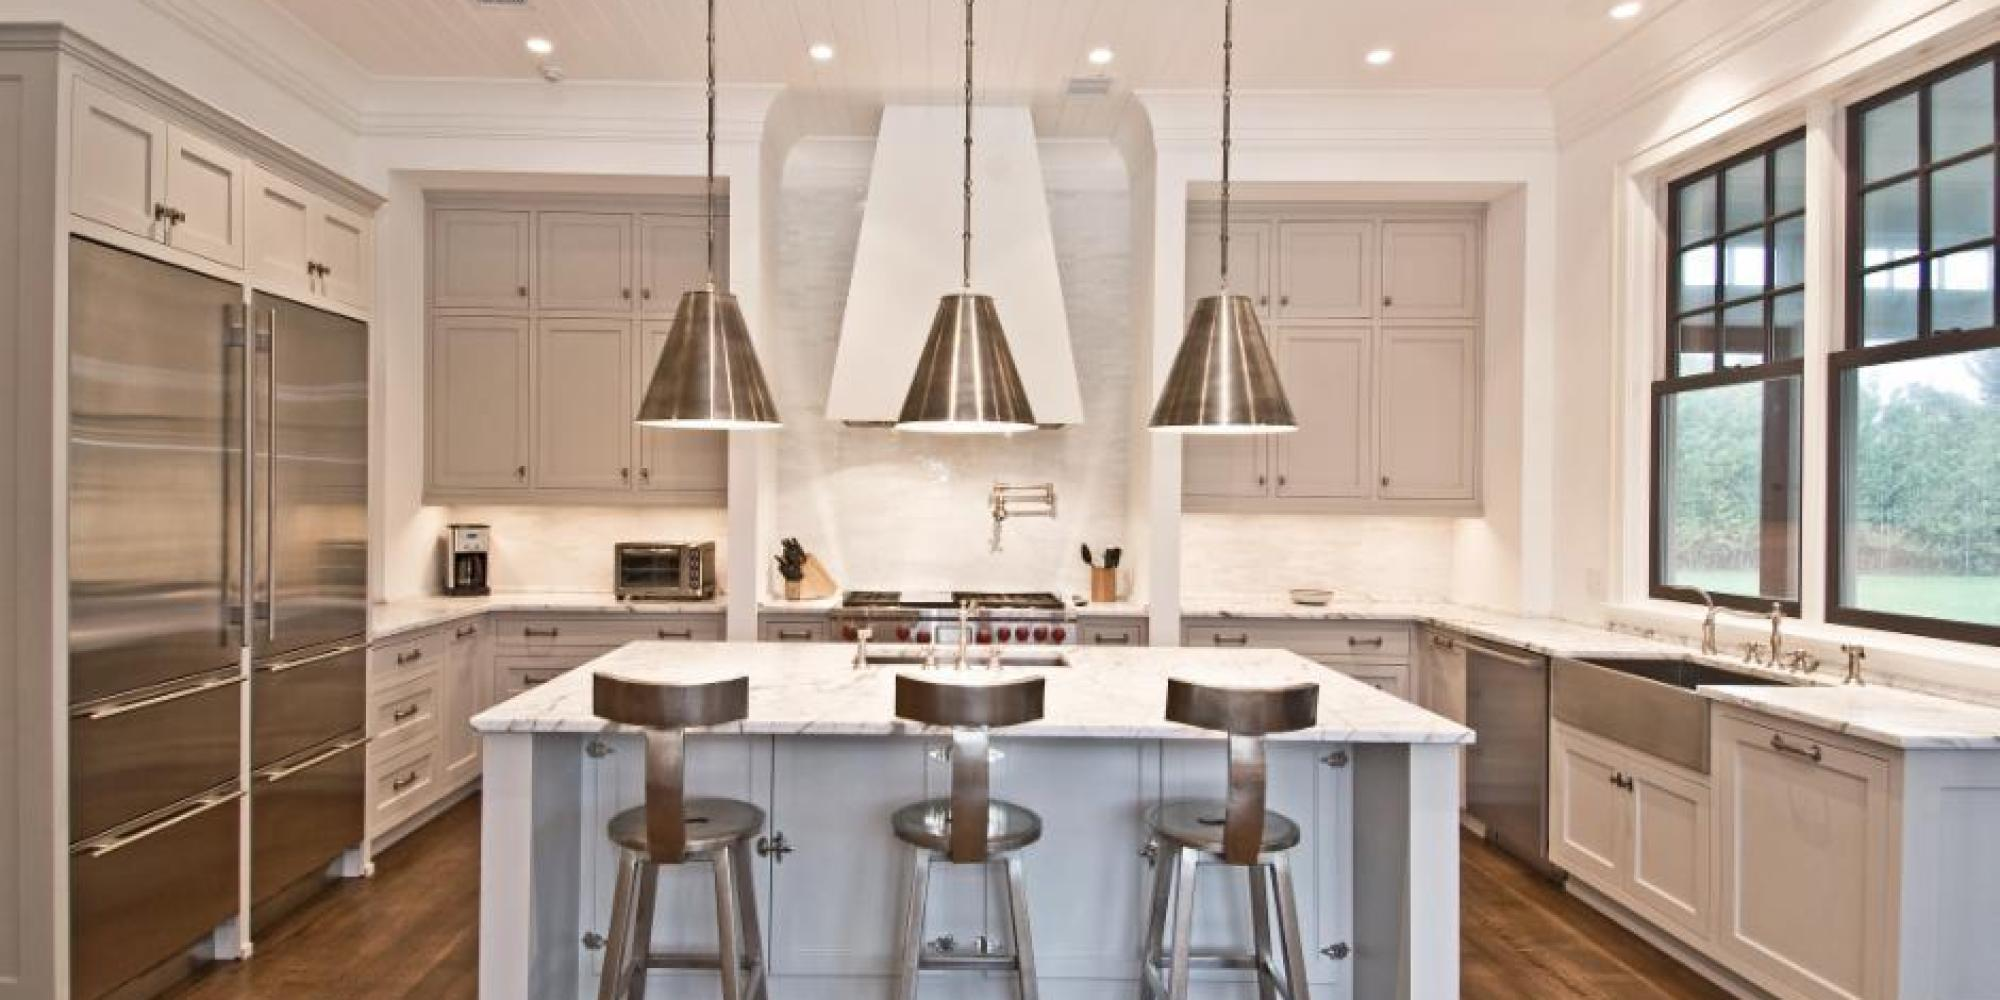 The Best Paint Colors for Every Type of Kitchen